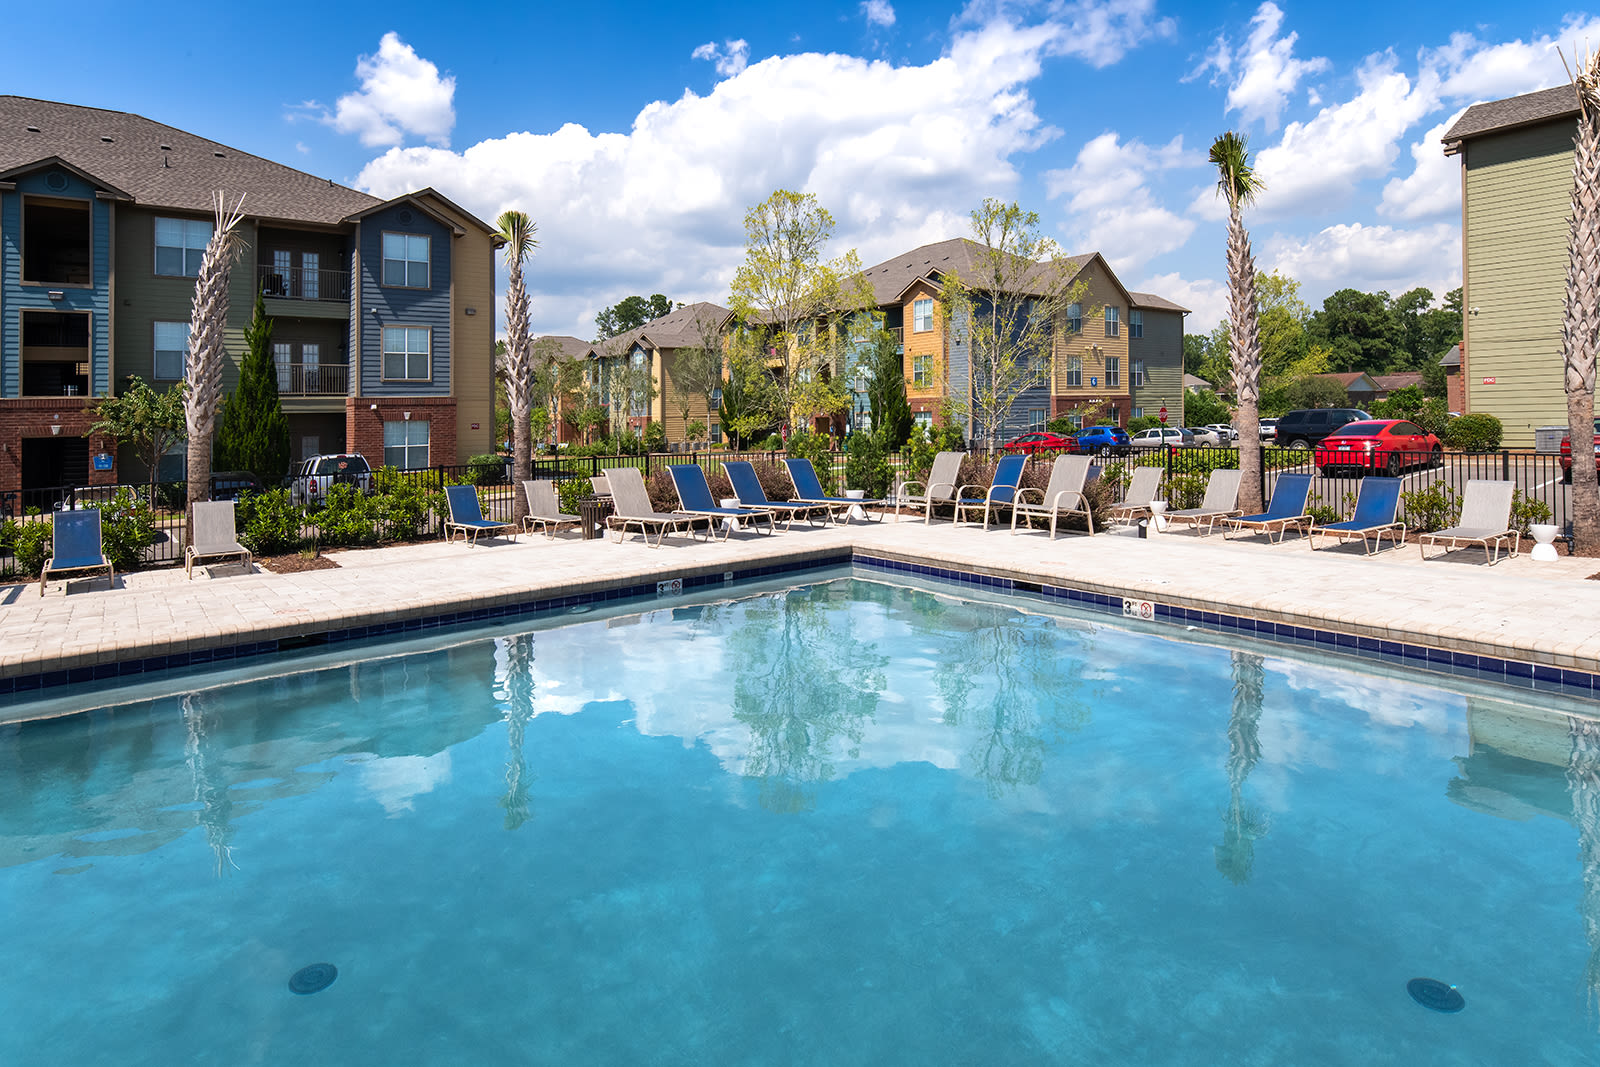 Apartments in Hattiesburg, MS